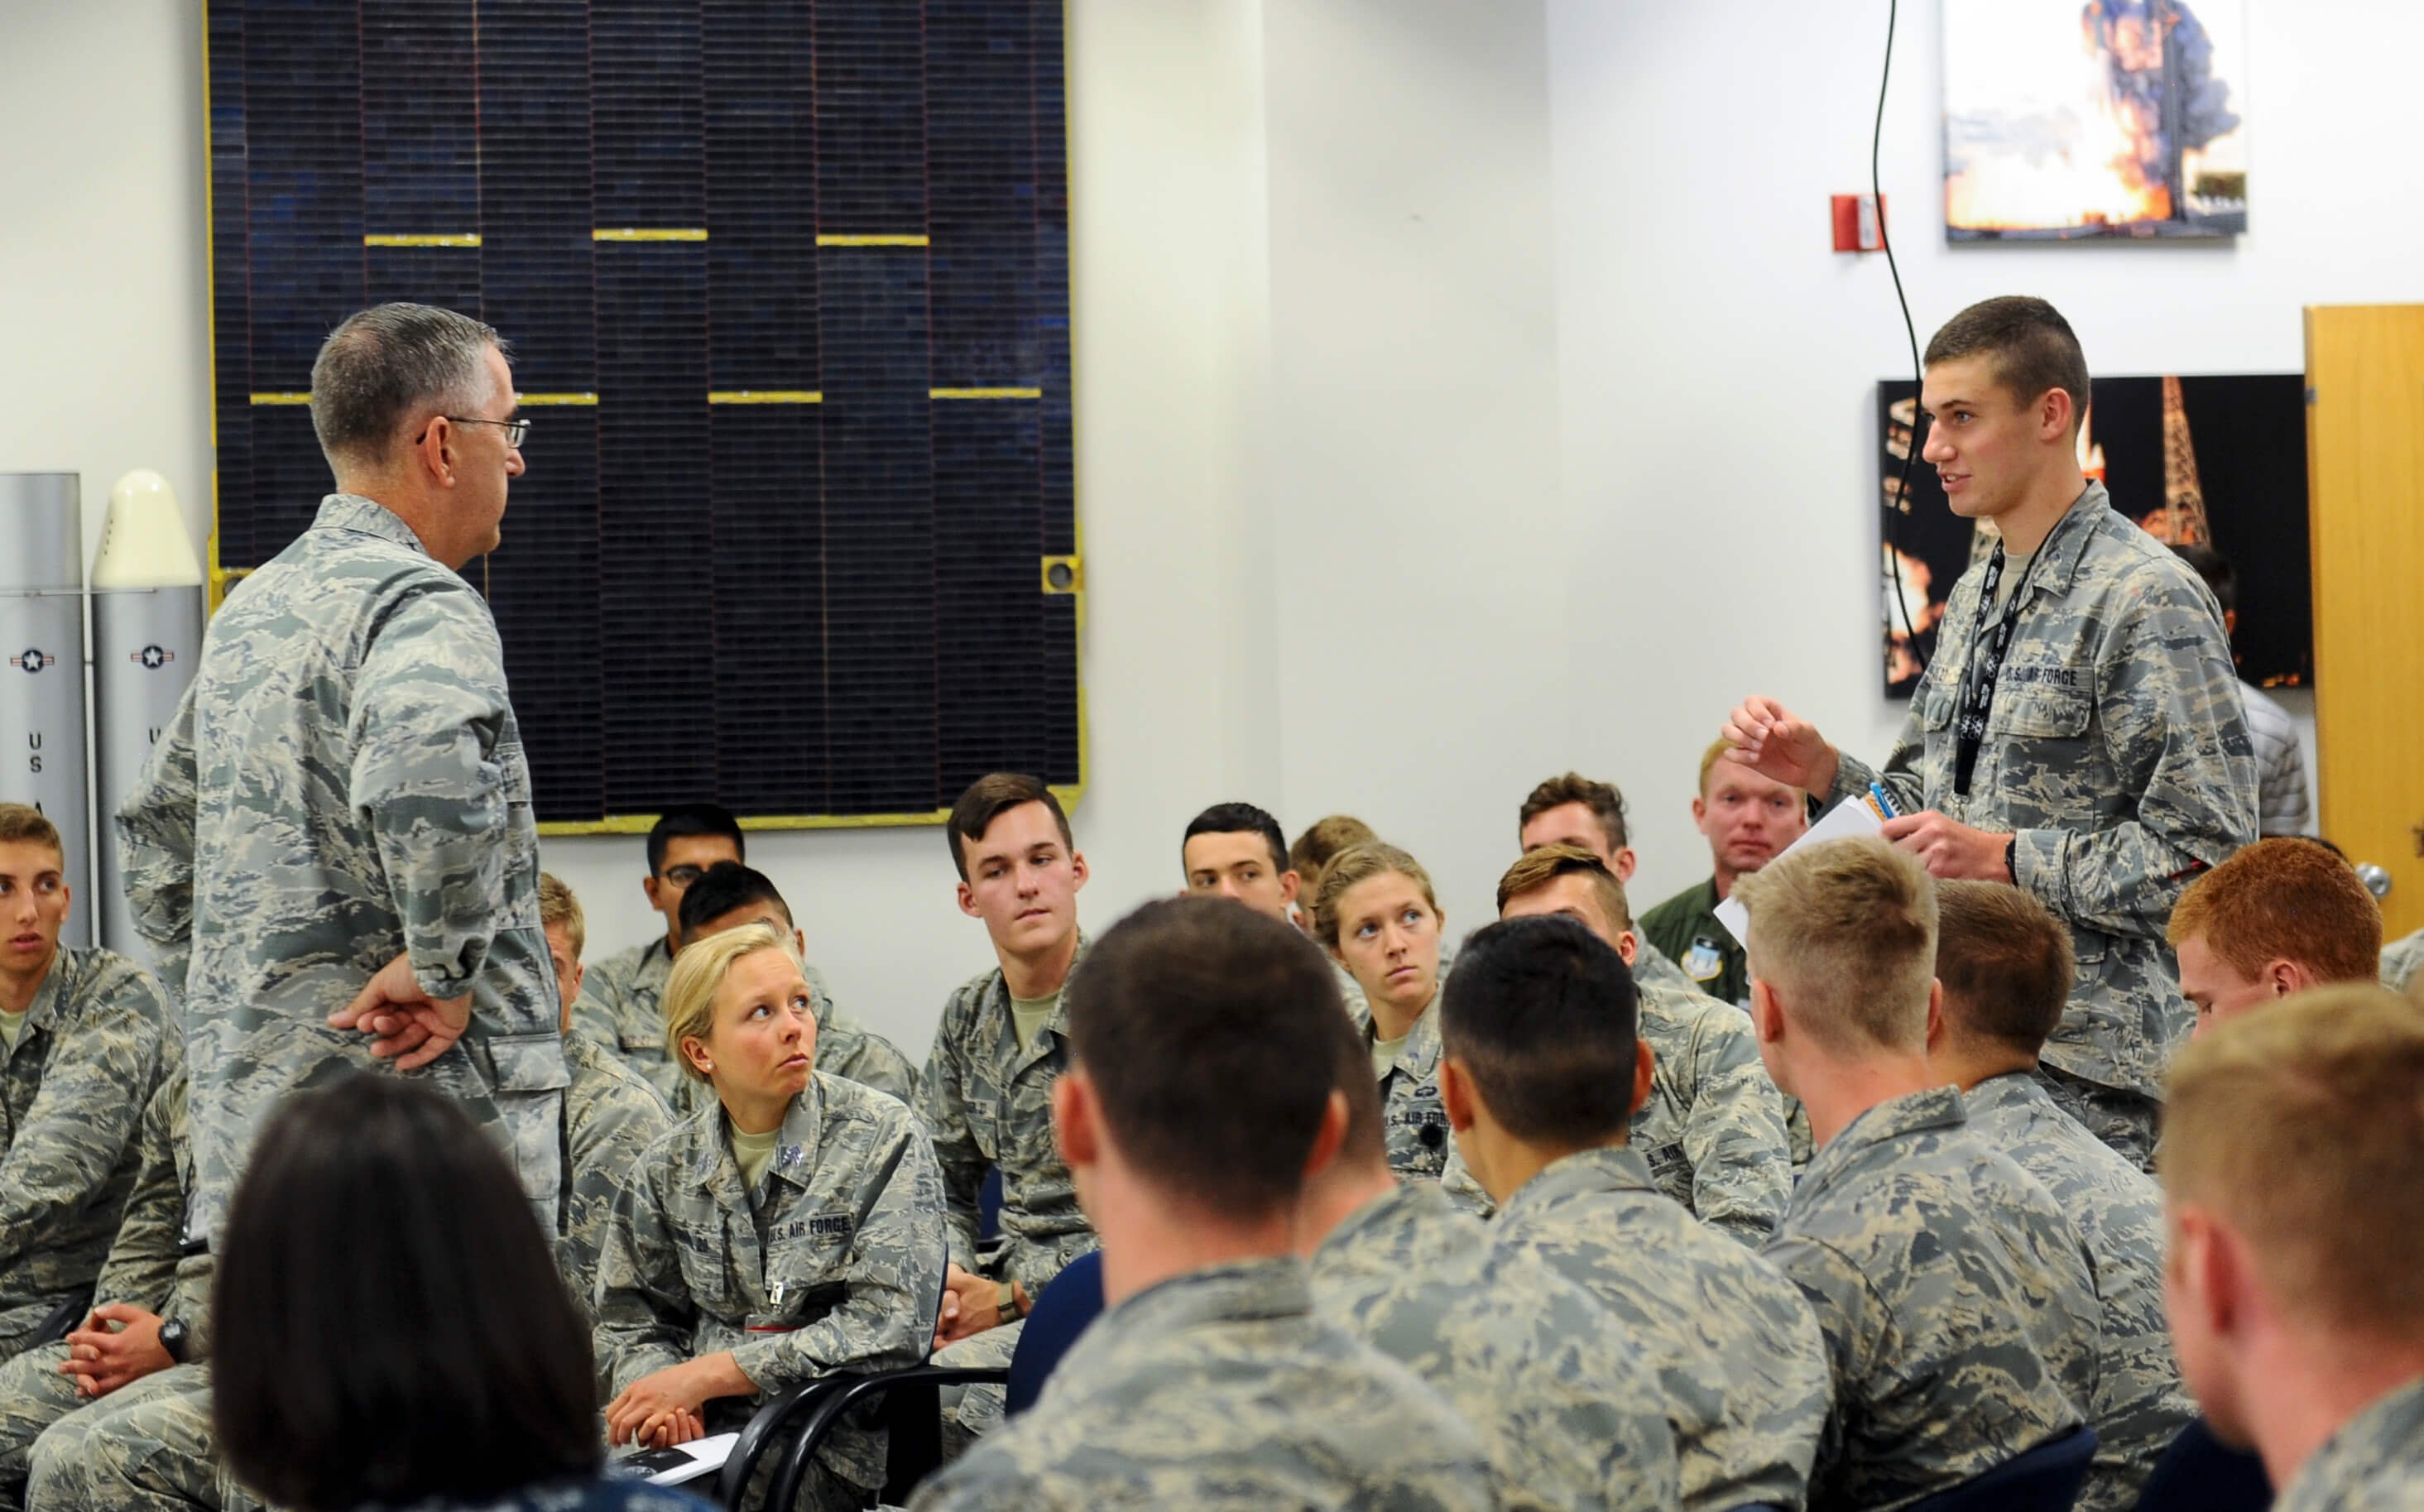 U.S. Air Force Gen. John E. Hyten, U.S. Strategic Command commander, listens to a question from a cadet during his visit to the U.S. Air Force Academy's FalconSAT engineering program at the Air Force Academy, Colo., Aug. 10, 2018. FalconSAT is the name of the Academy's small satellite engineering program where cadets get hands-on experience designing, building, testing, launching and operating satellites. (U.S. Air Force photo by Staff Sgt. Charles Rivezzo)